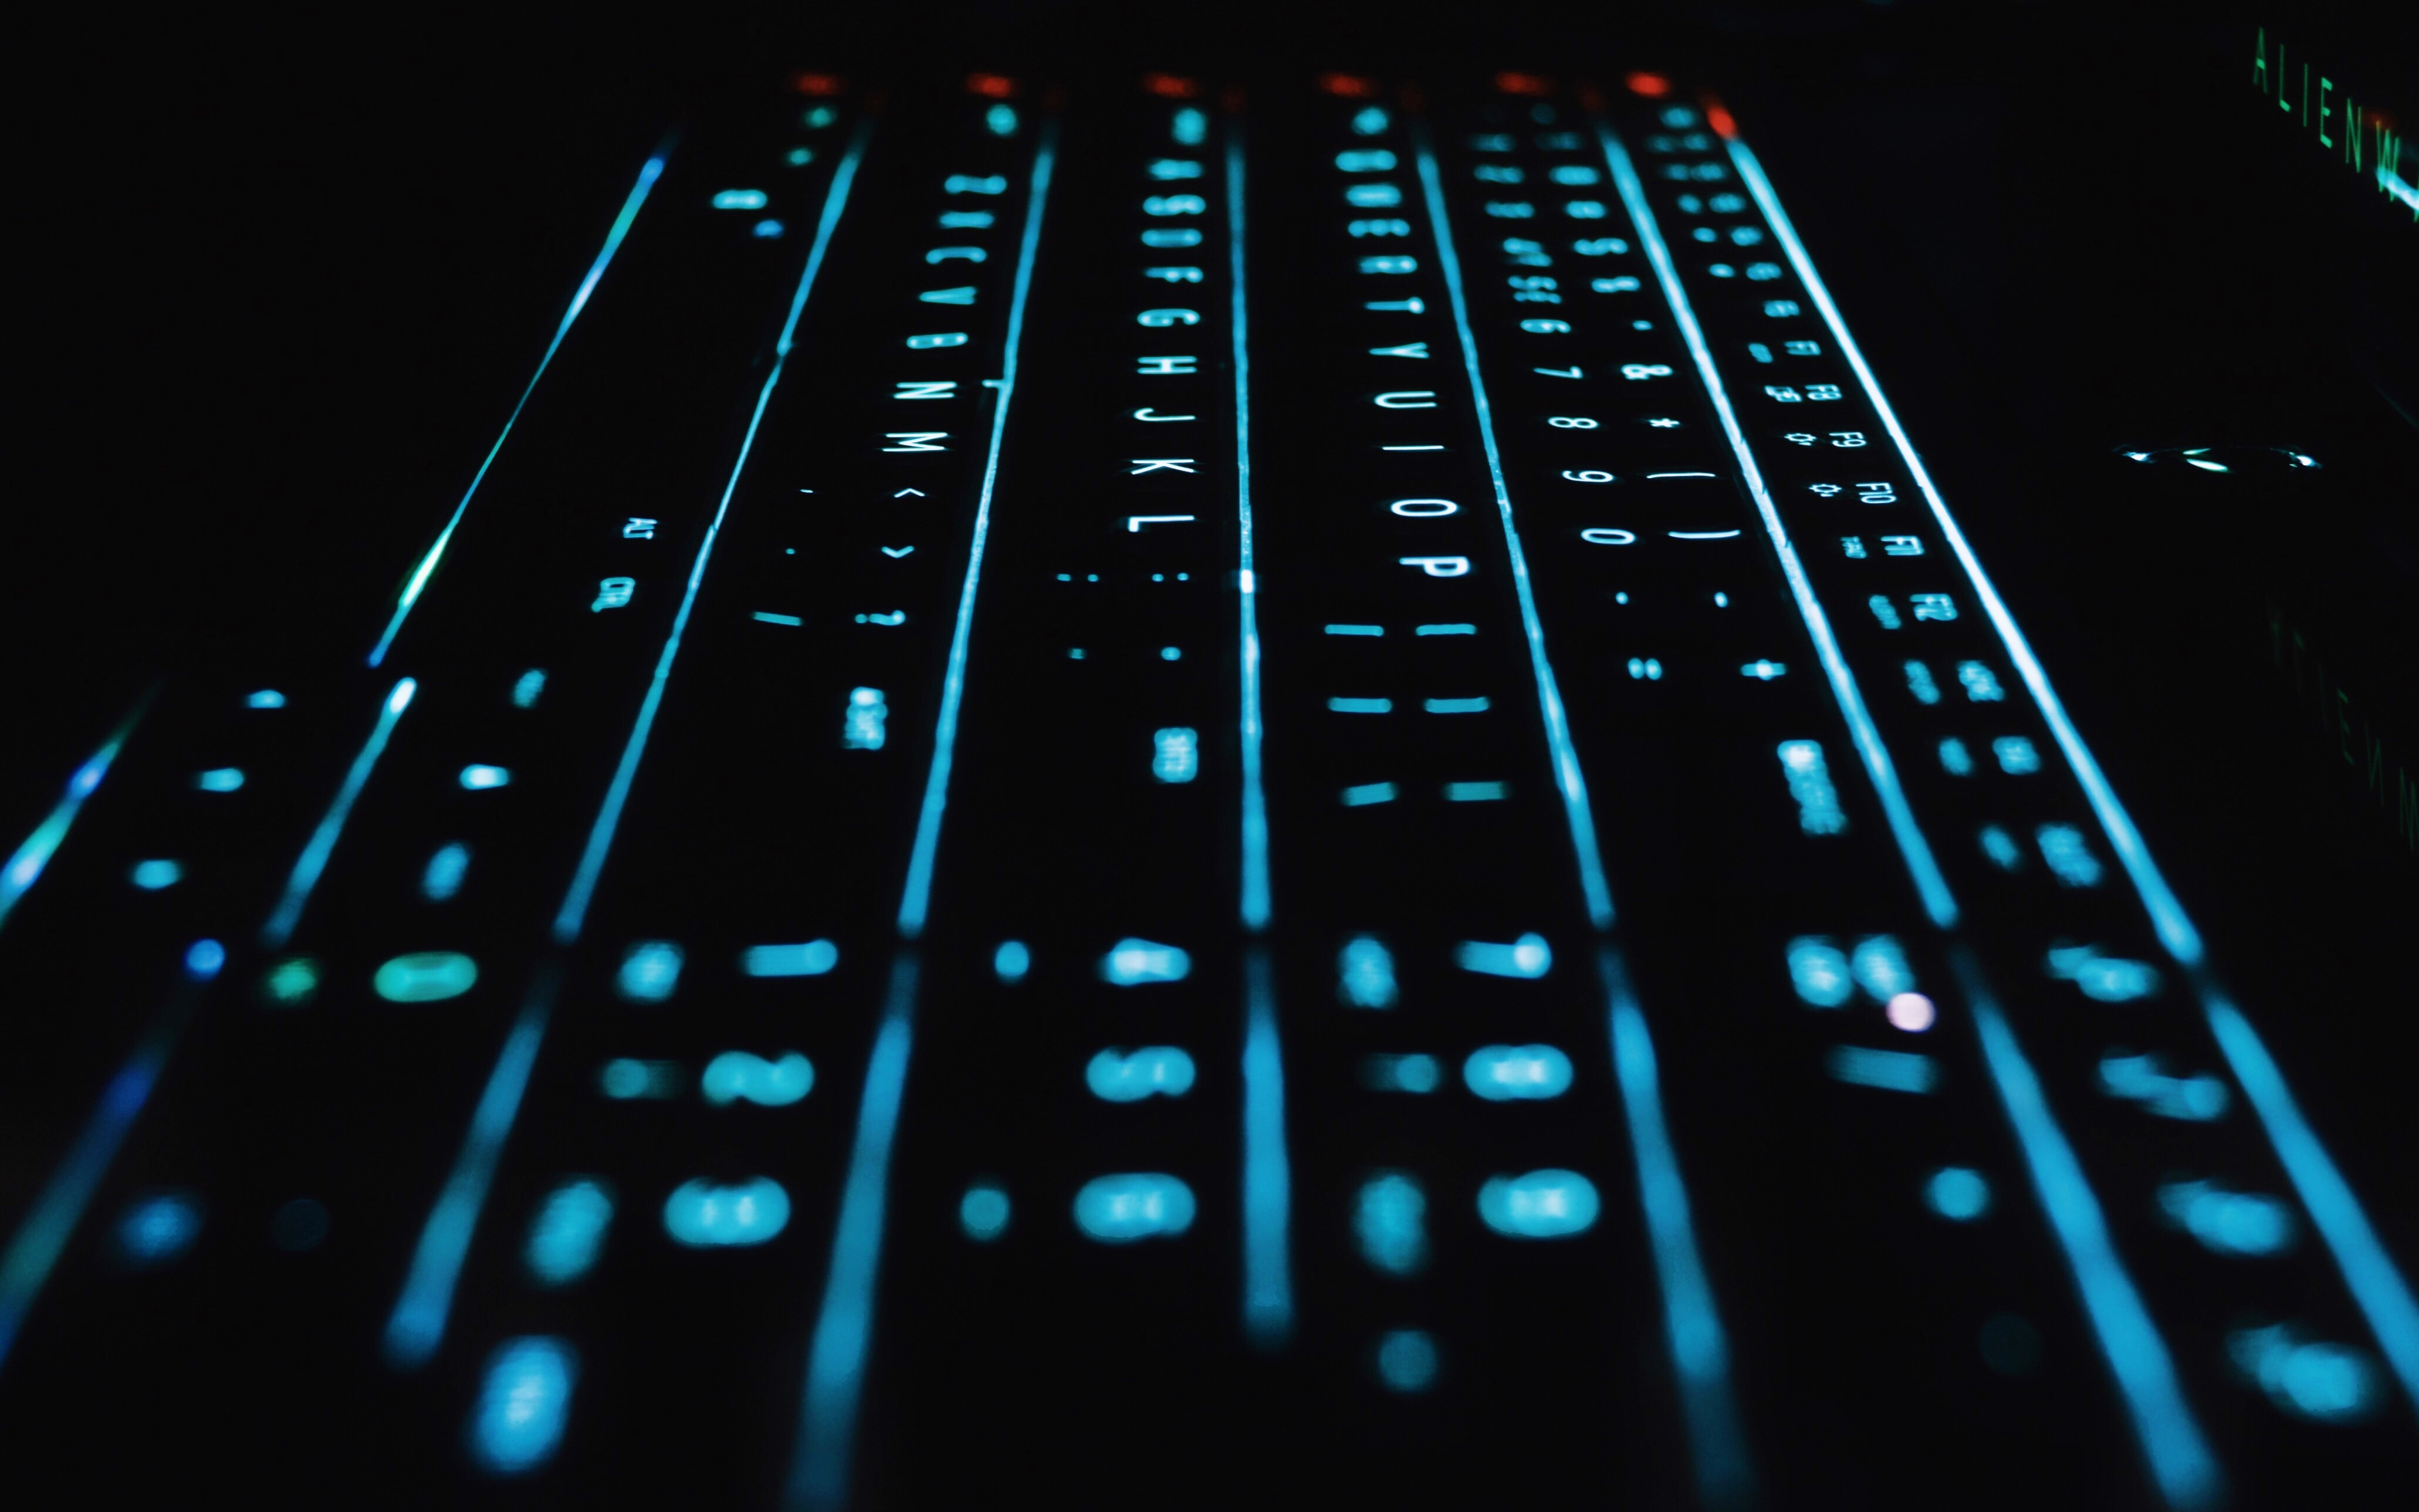 computer mechanical keyboard with blue LED light